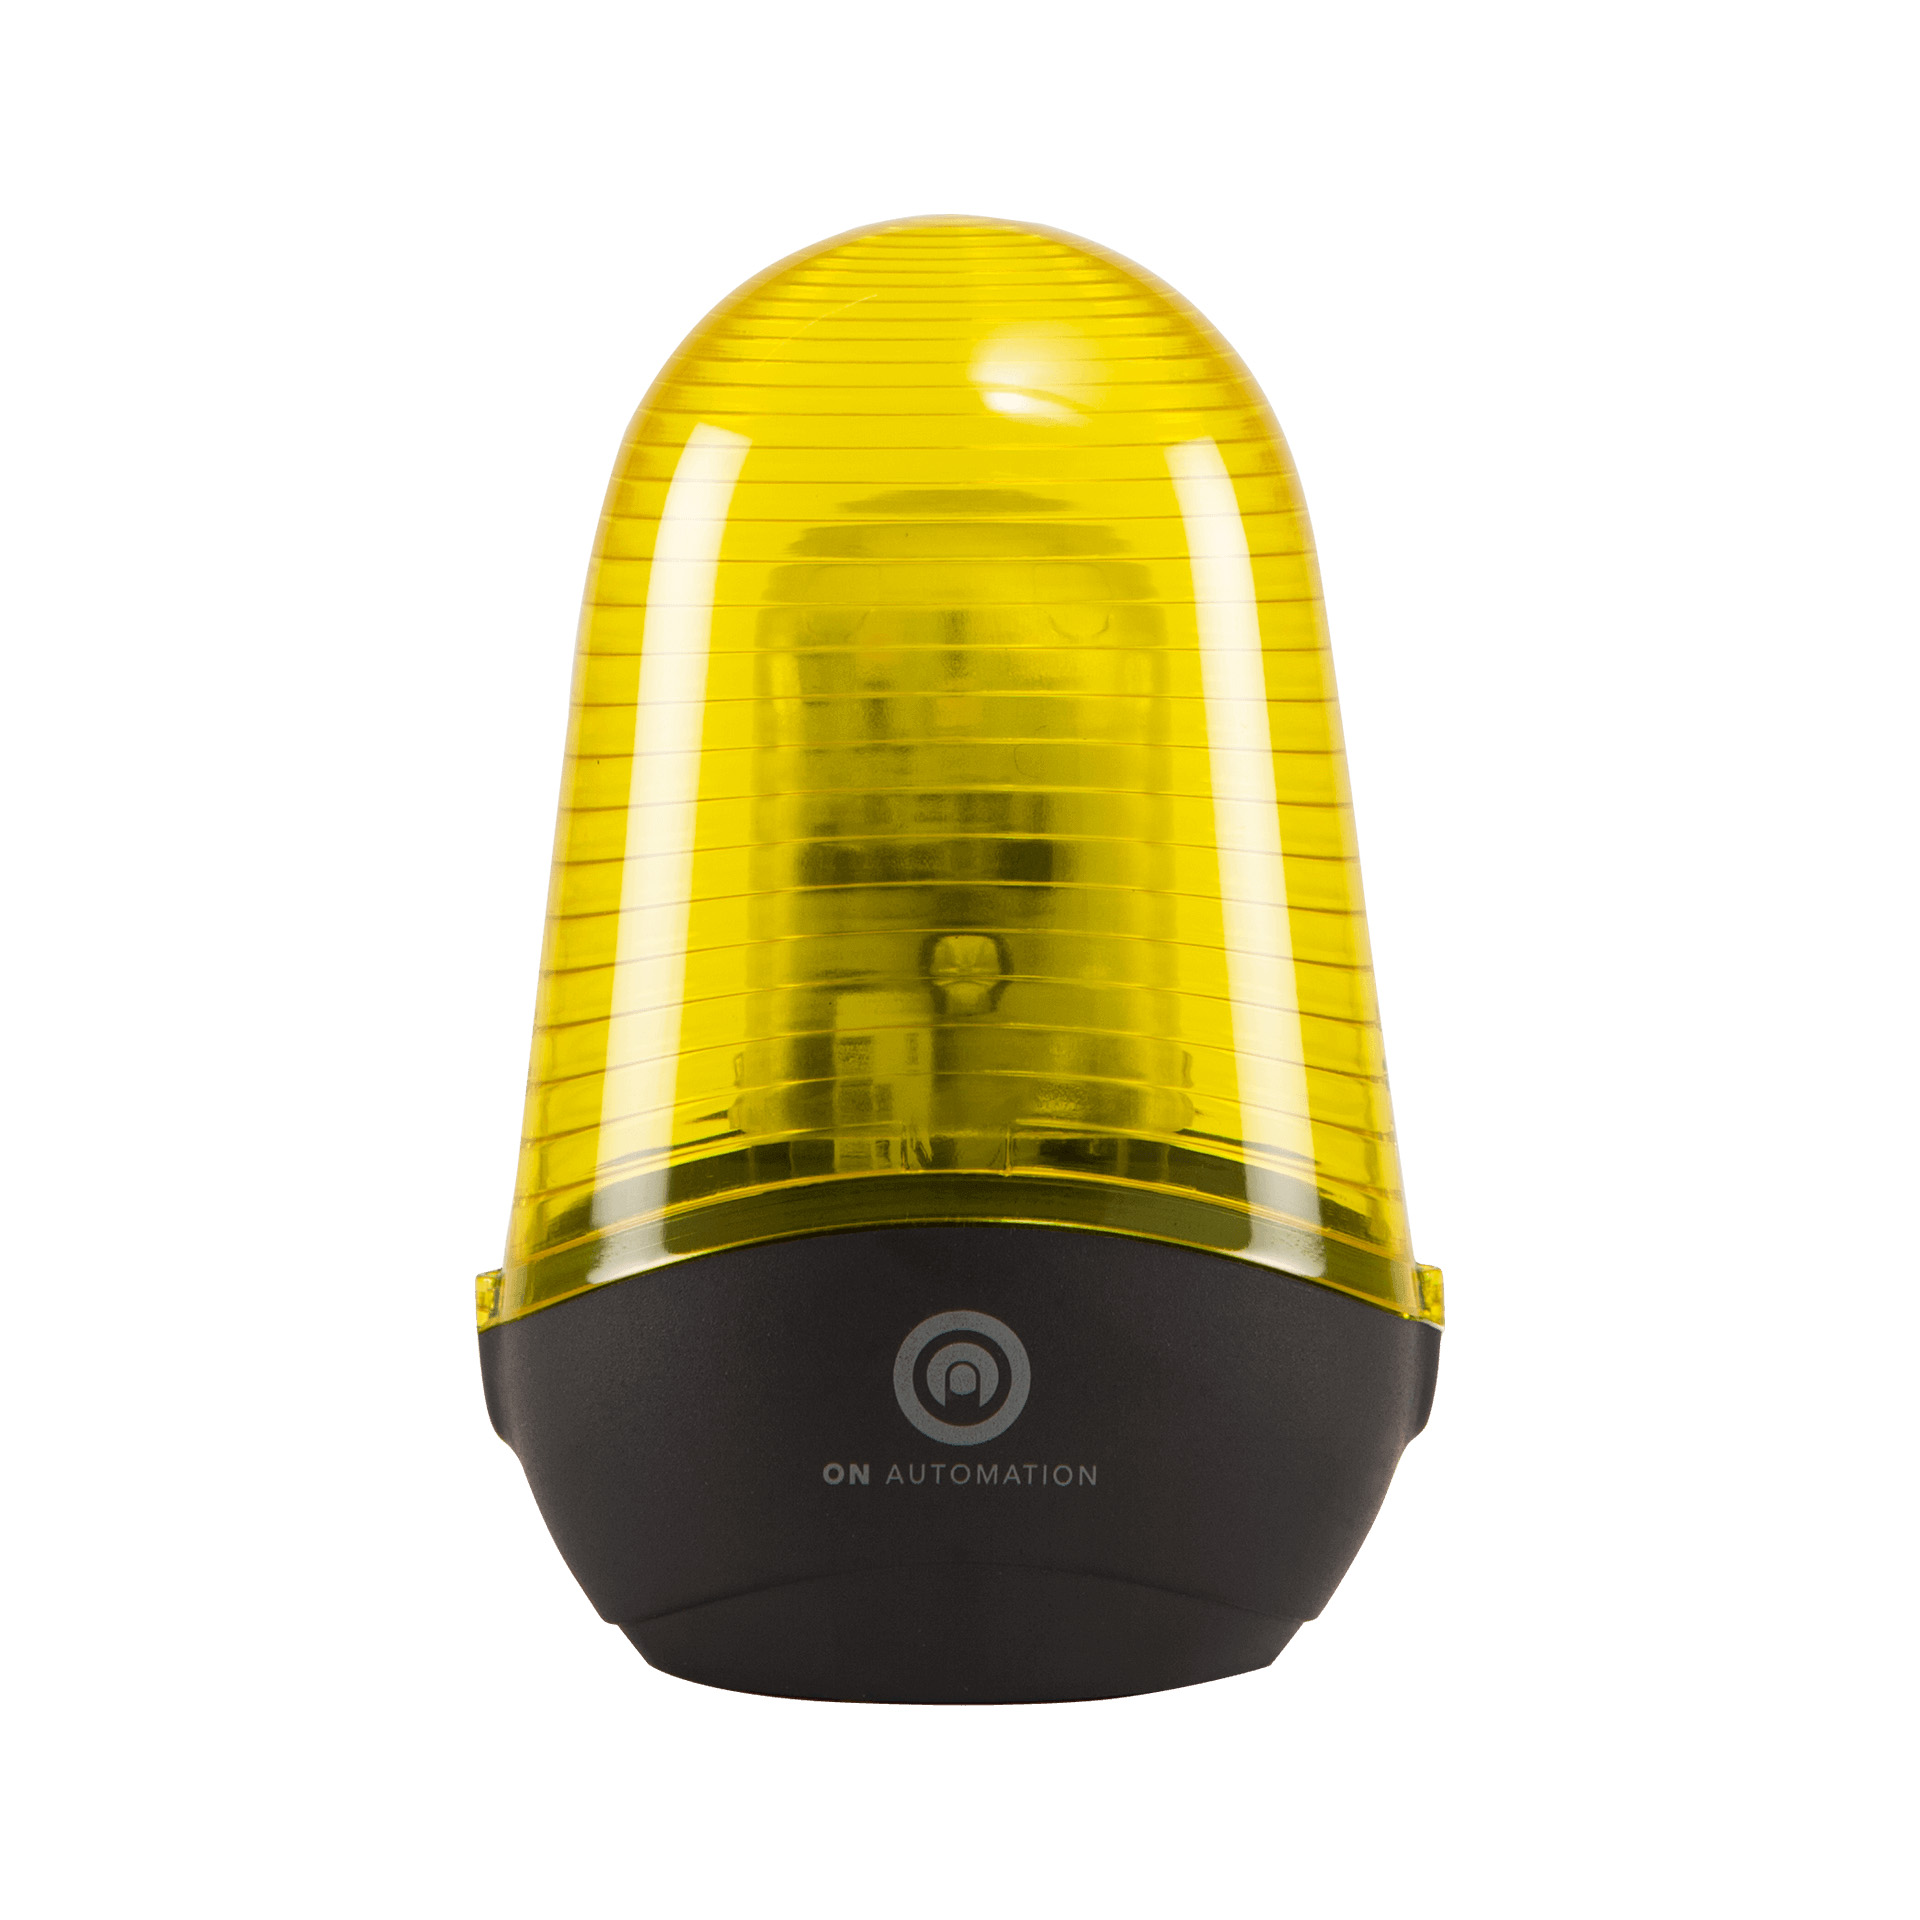 OnAutomation FL1.LED